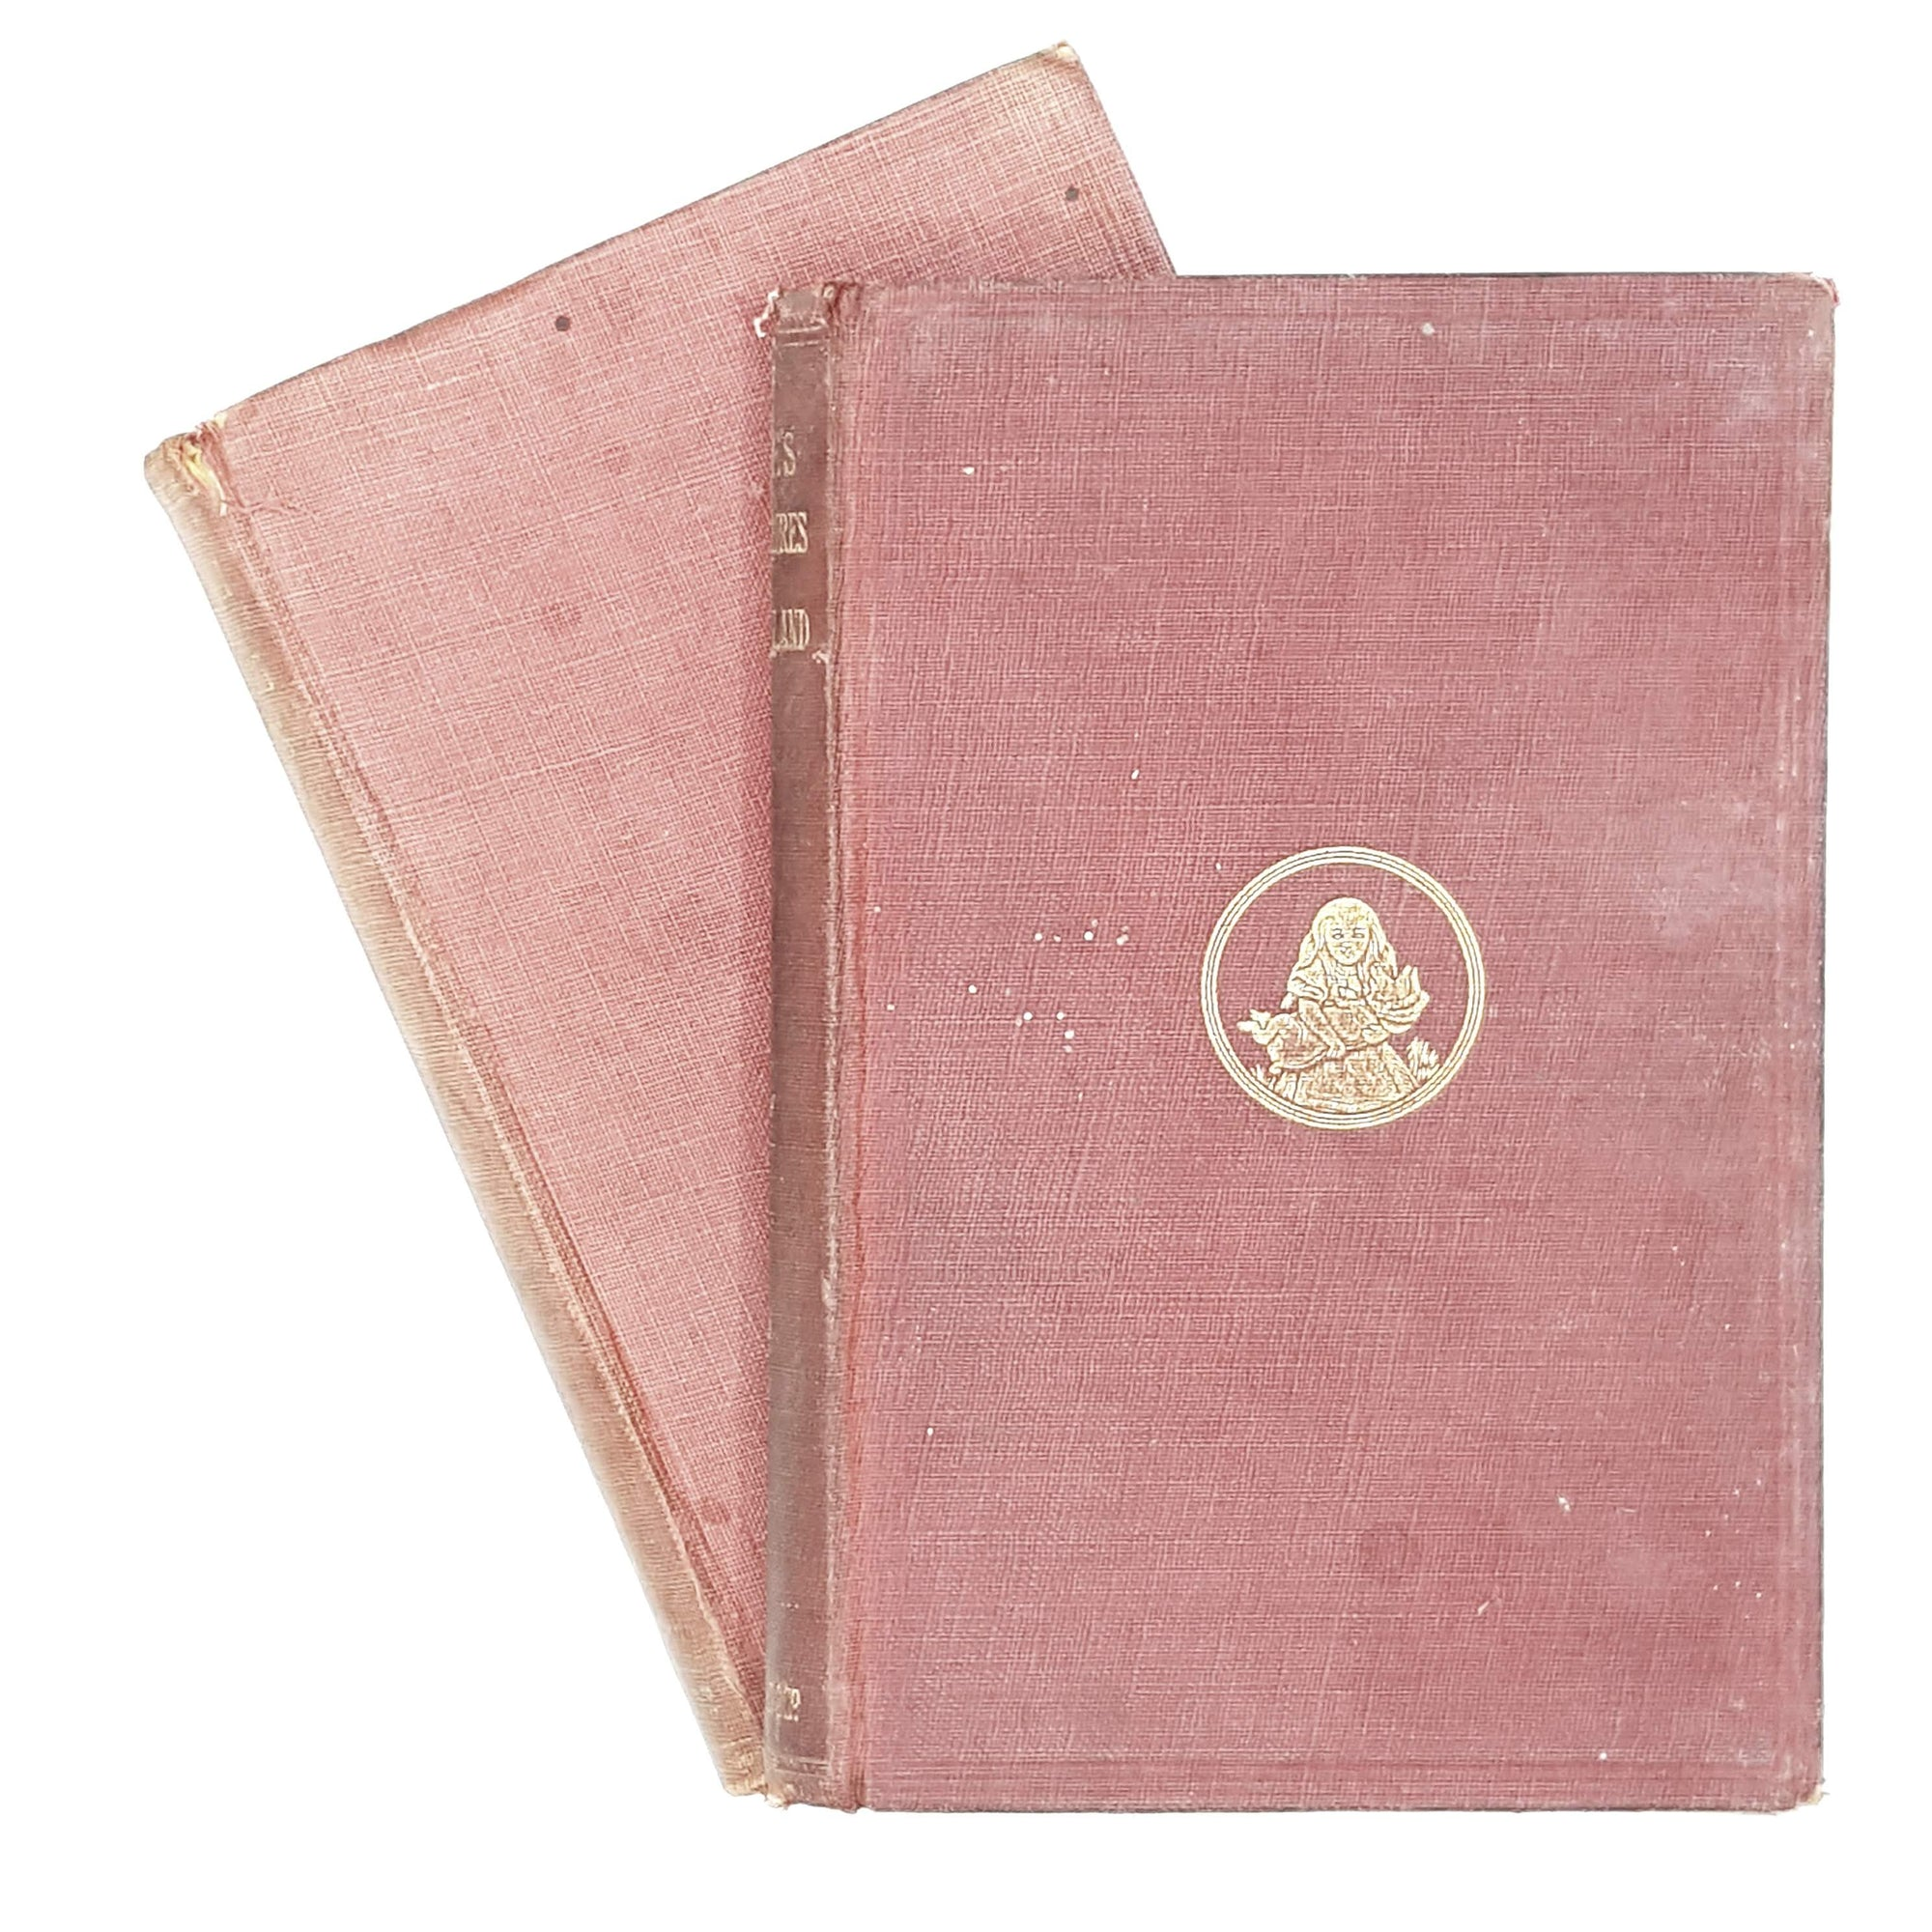 Collection Alice's Adventures in Wonderland and Through the Looking Glass by Lewis Carroll 1911 - 1914